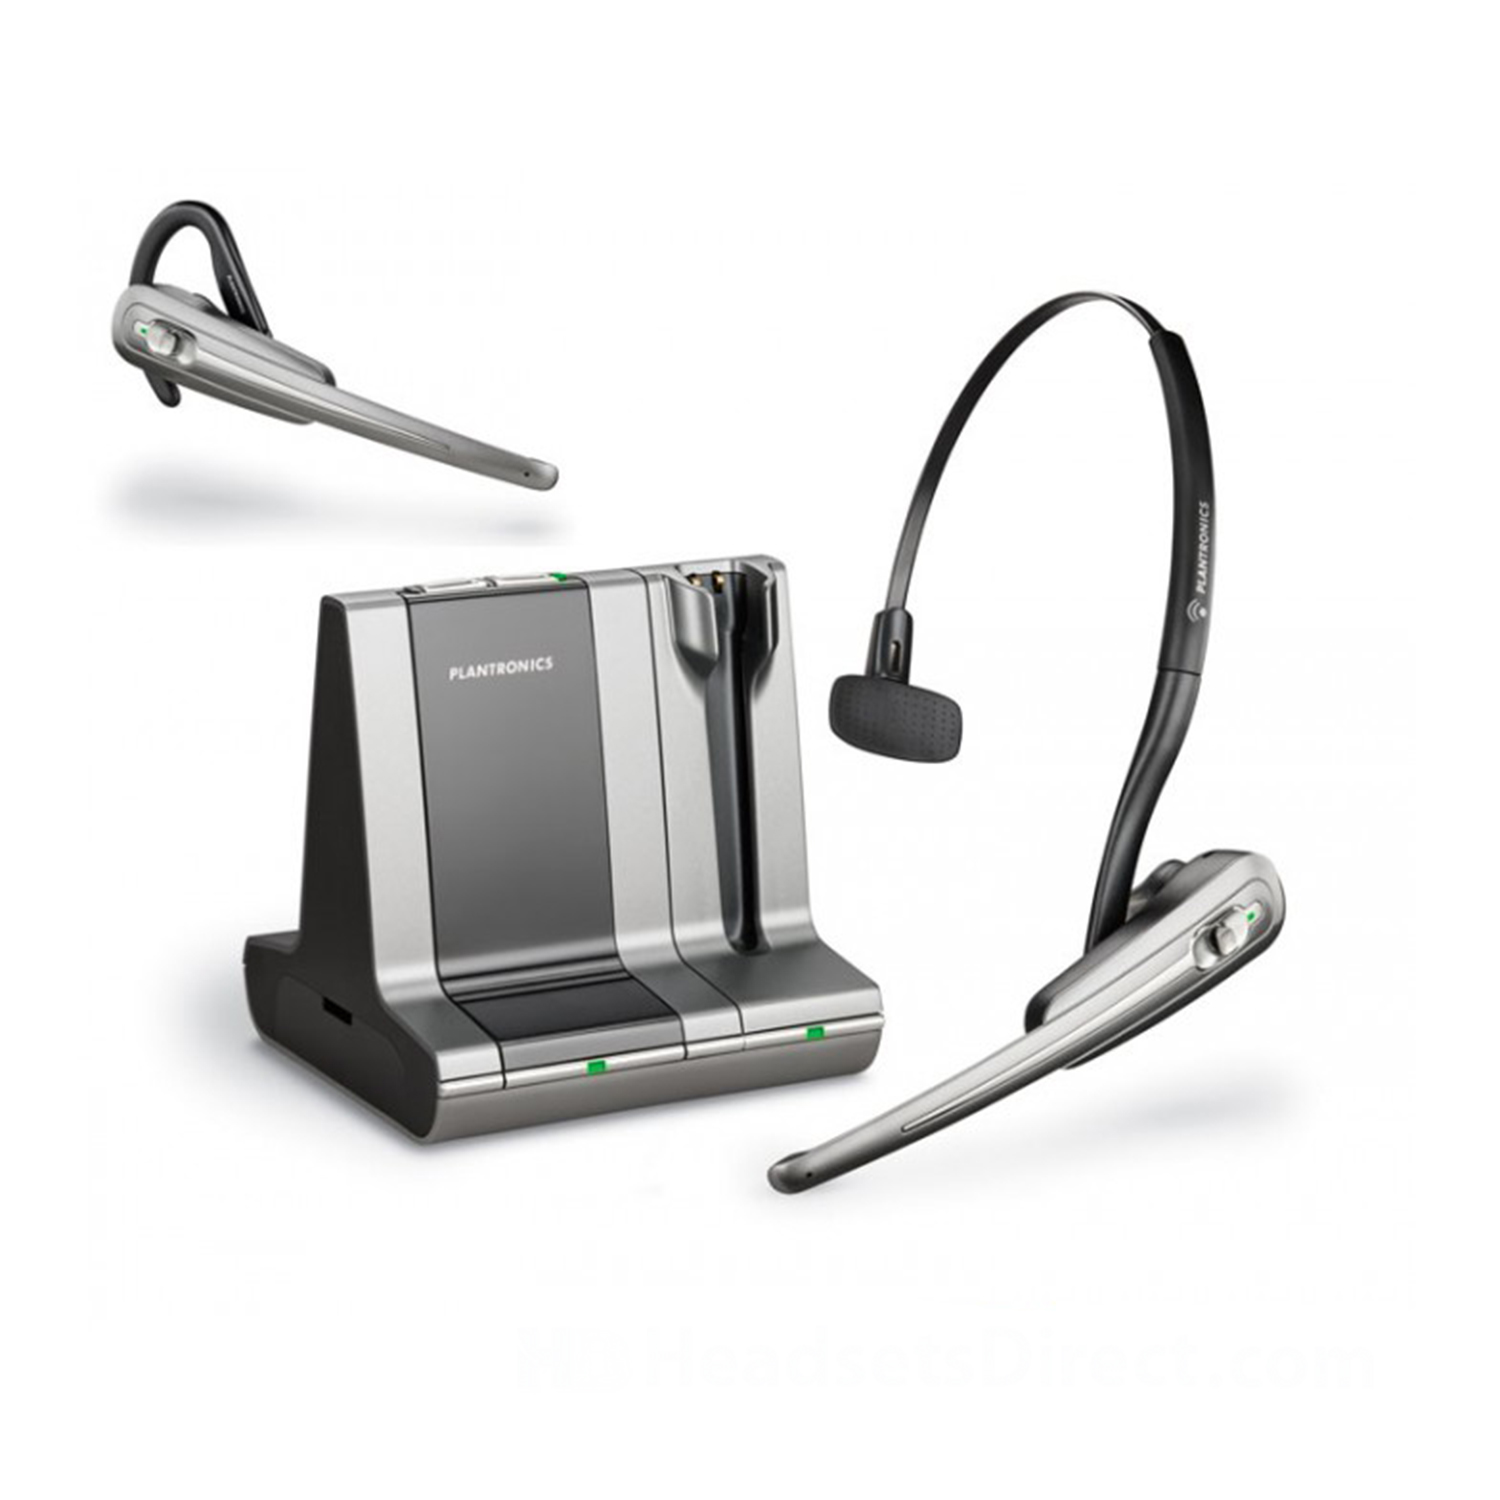 Plantronics Savi Office WO100 Noise Cancelling Wireless Headset - Refurbished